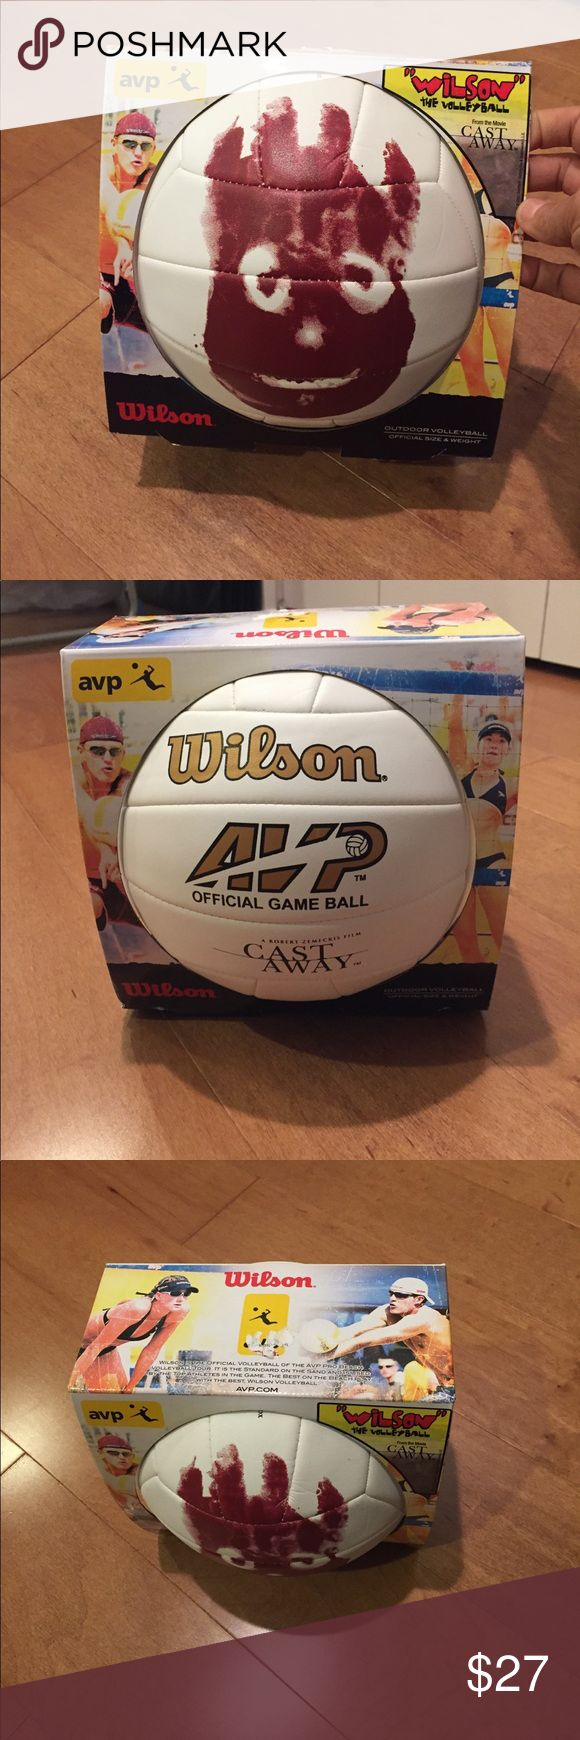 WISON THE VOLLEYBALL FROM CASTAWAY Wilson the volleyball from the movie Castaway! New in package! Wilson Other